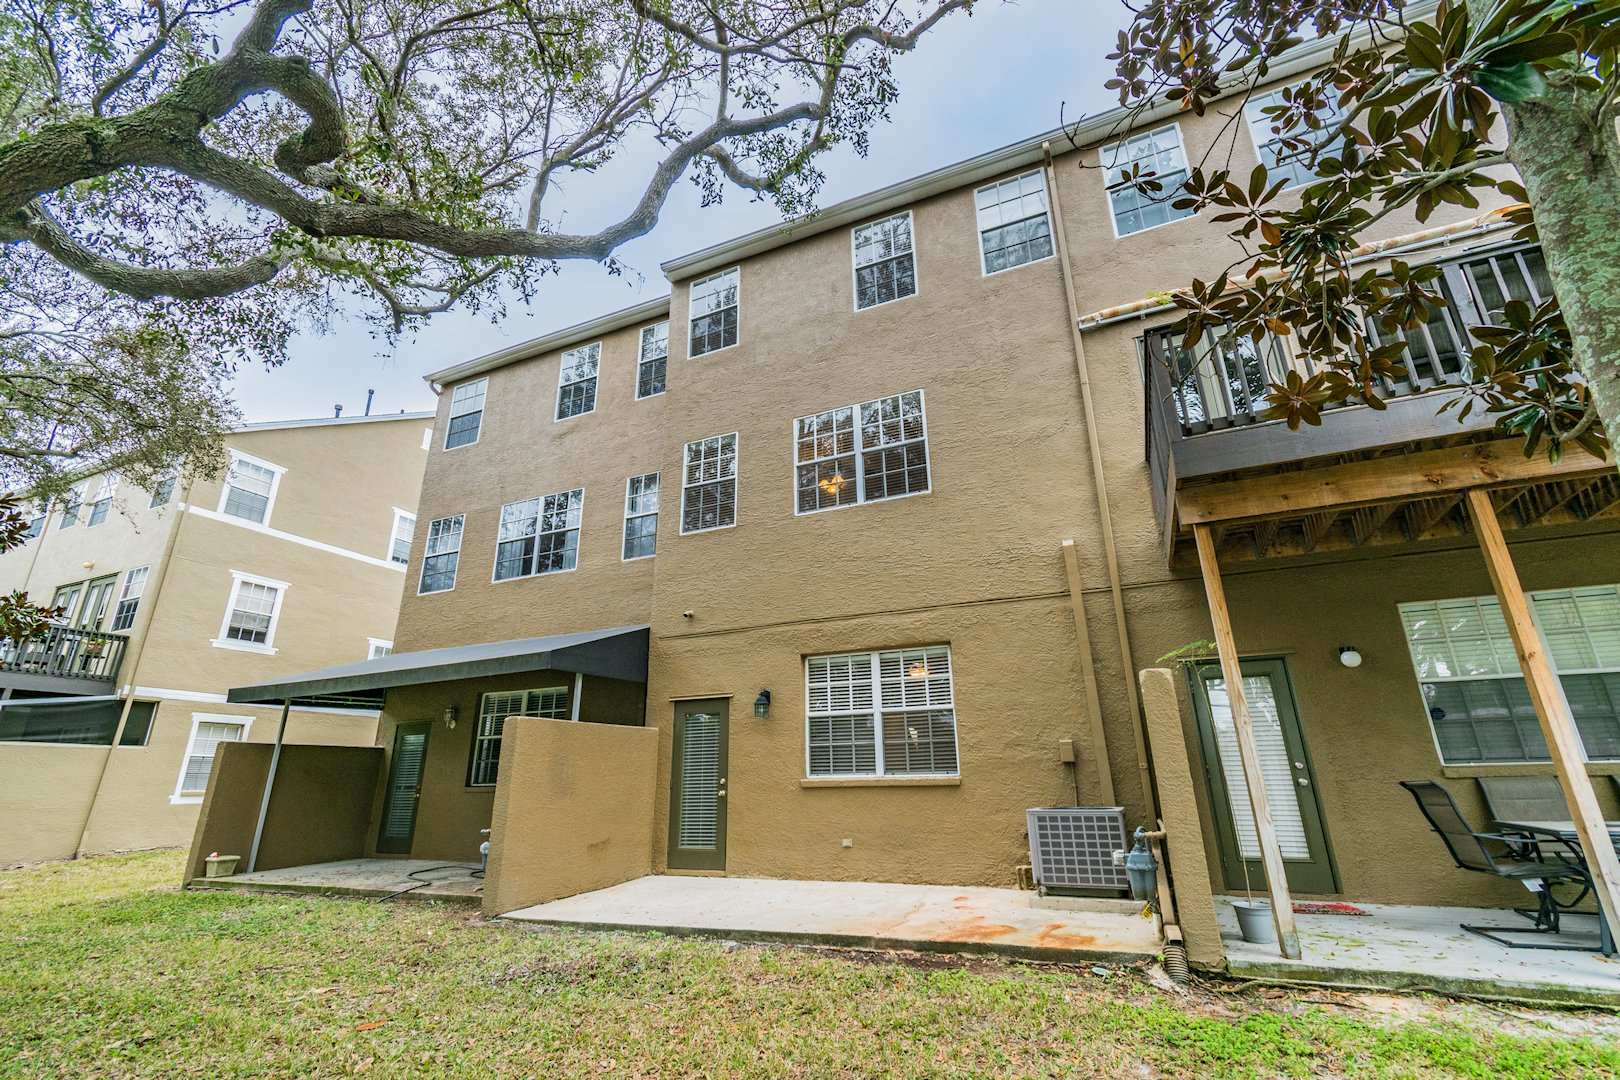 2929 bayshore Pointe Dr. Tampa Fl, Bayshore Pointe Townhomes (4)